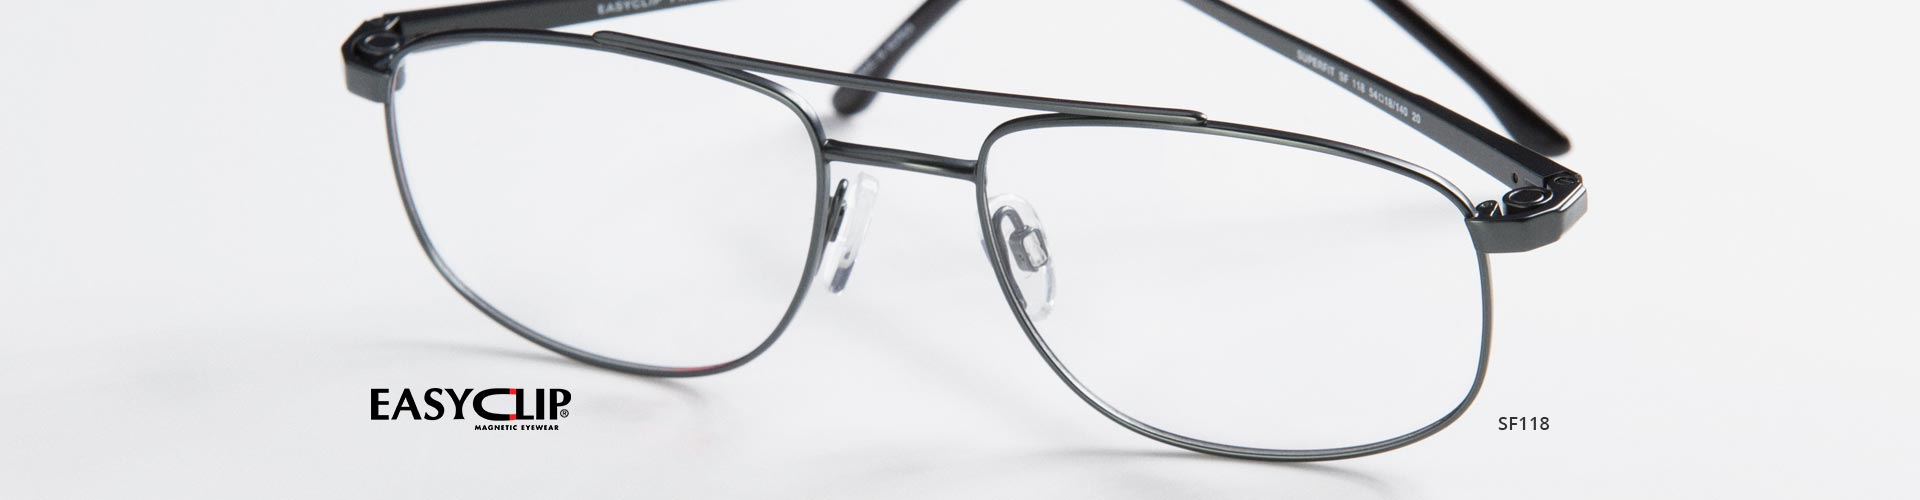 Shop Easy Clip Eyeglasses - model SF 118 featured